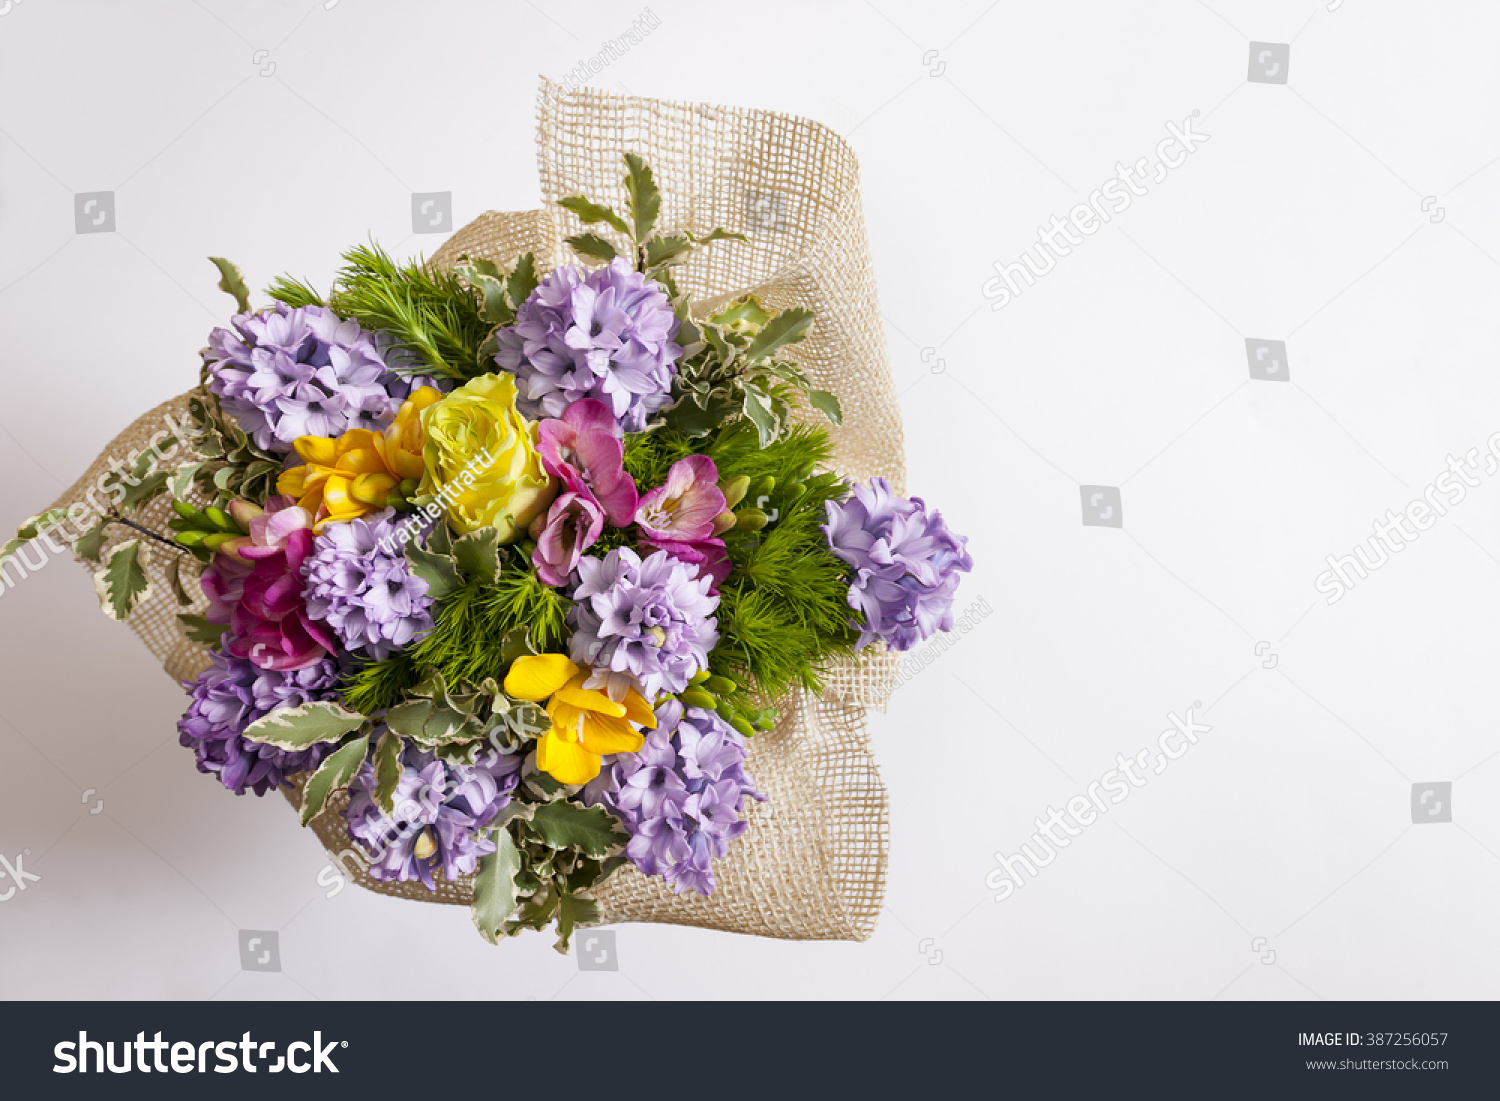 Freesia Hyacinth Bouquet Seen Above Stock Photo & Image (Royalty ...